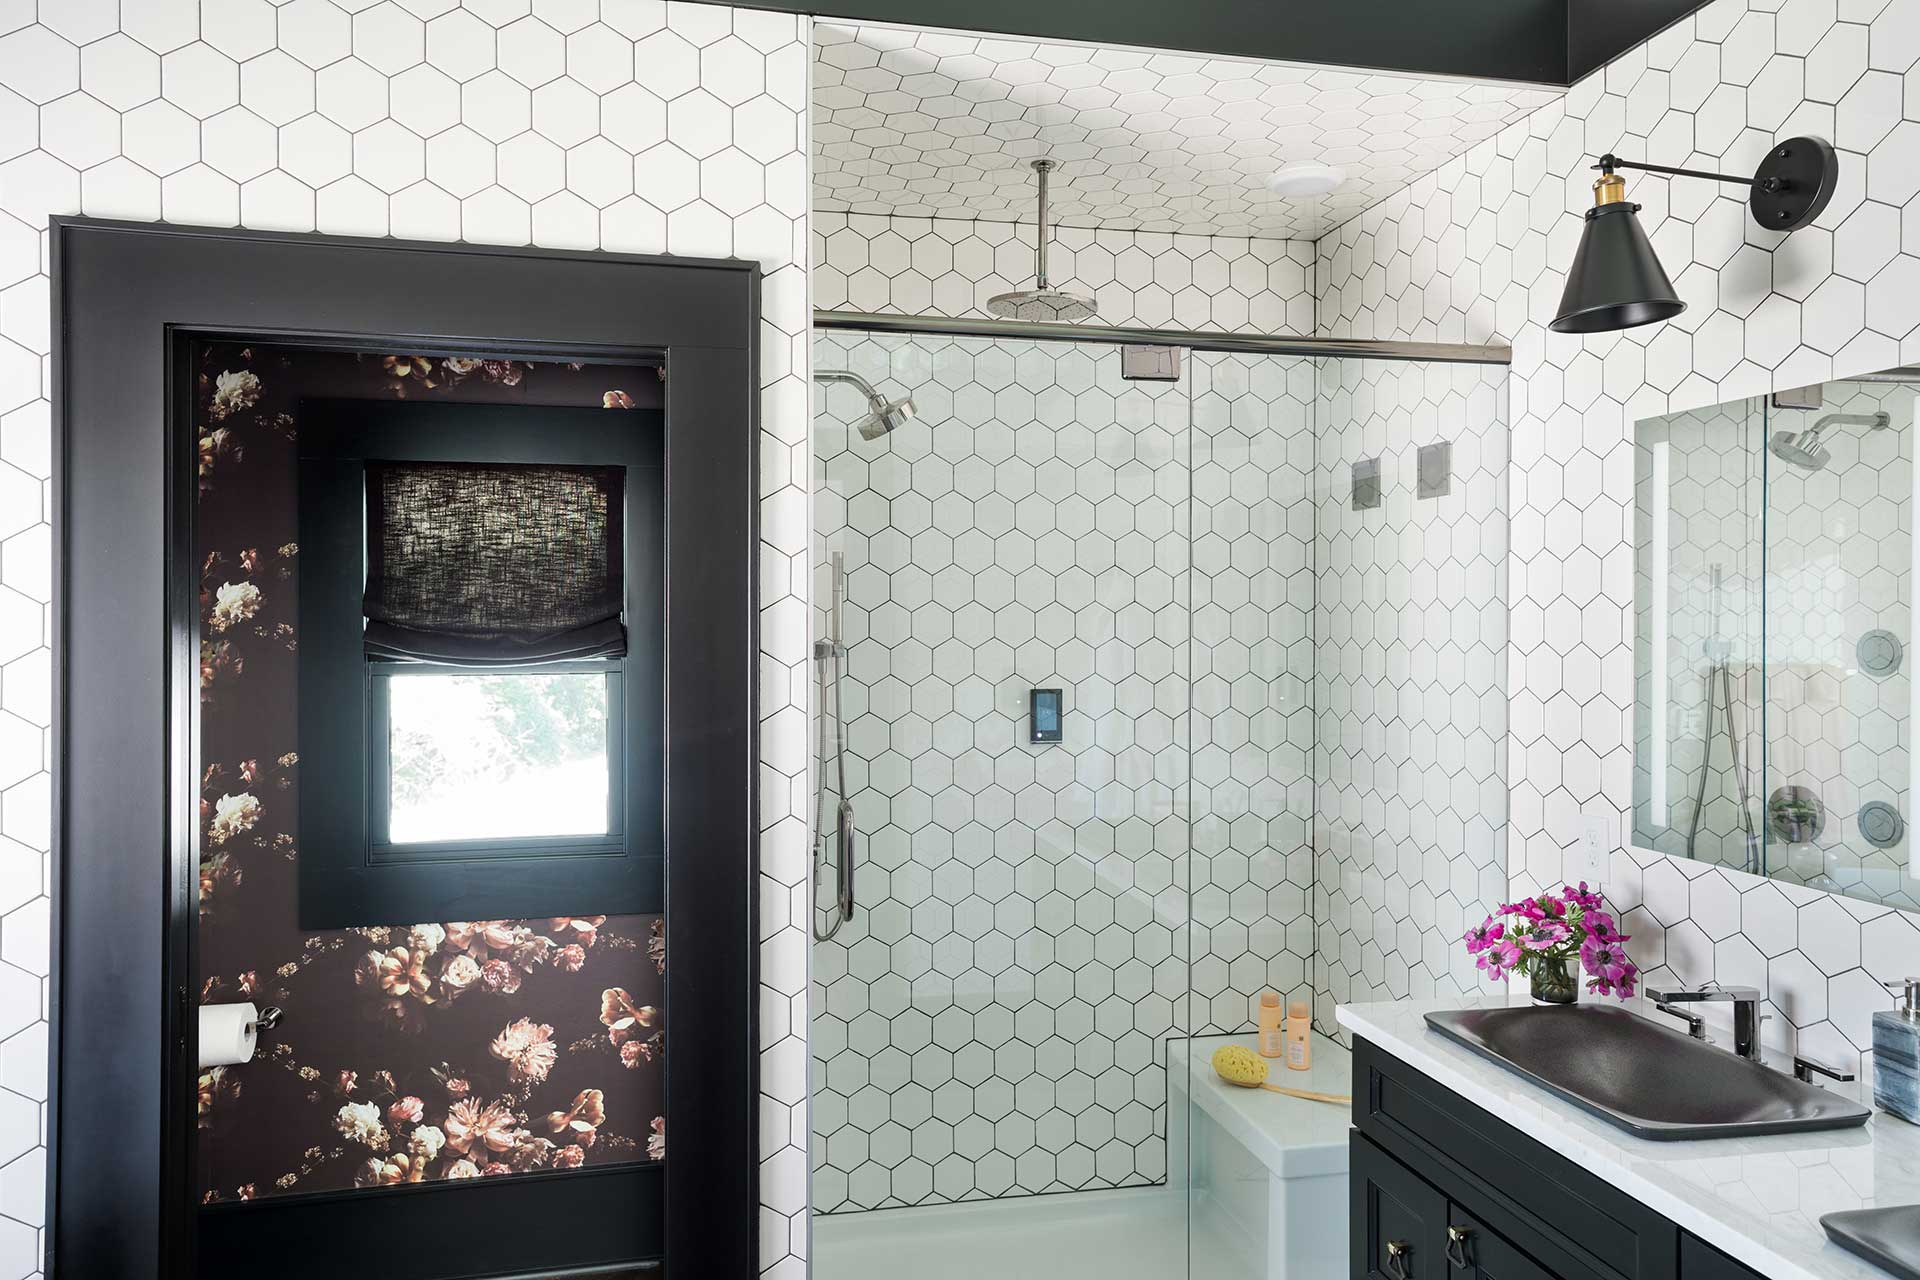 https://opendoorarchitecture.com/wp-content/uploads/2020/07/12_HGTV-Urban-Oasis-2017-Master-Bathroom-with-Shower.jpg